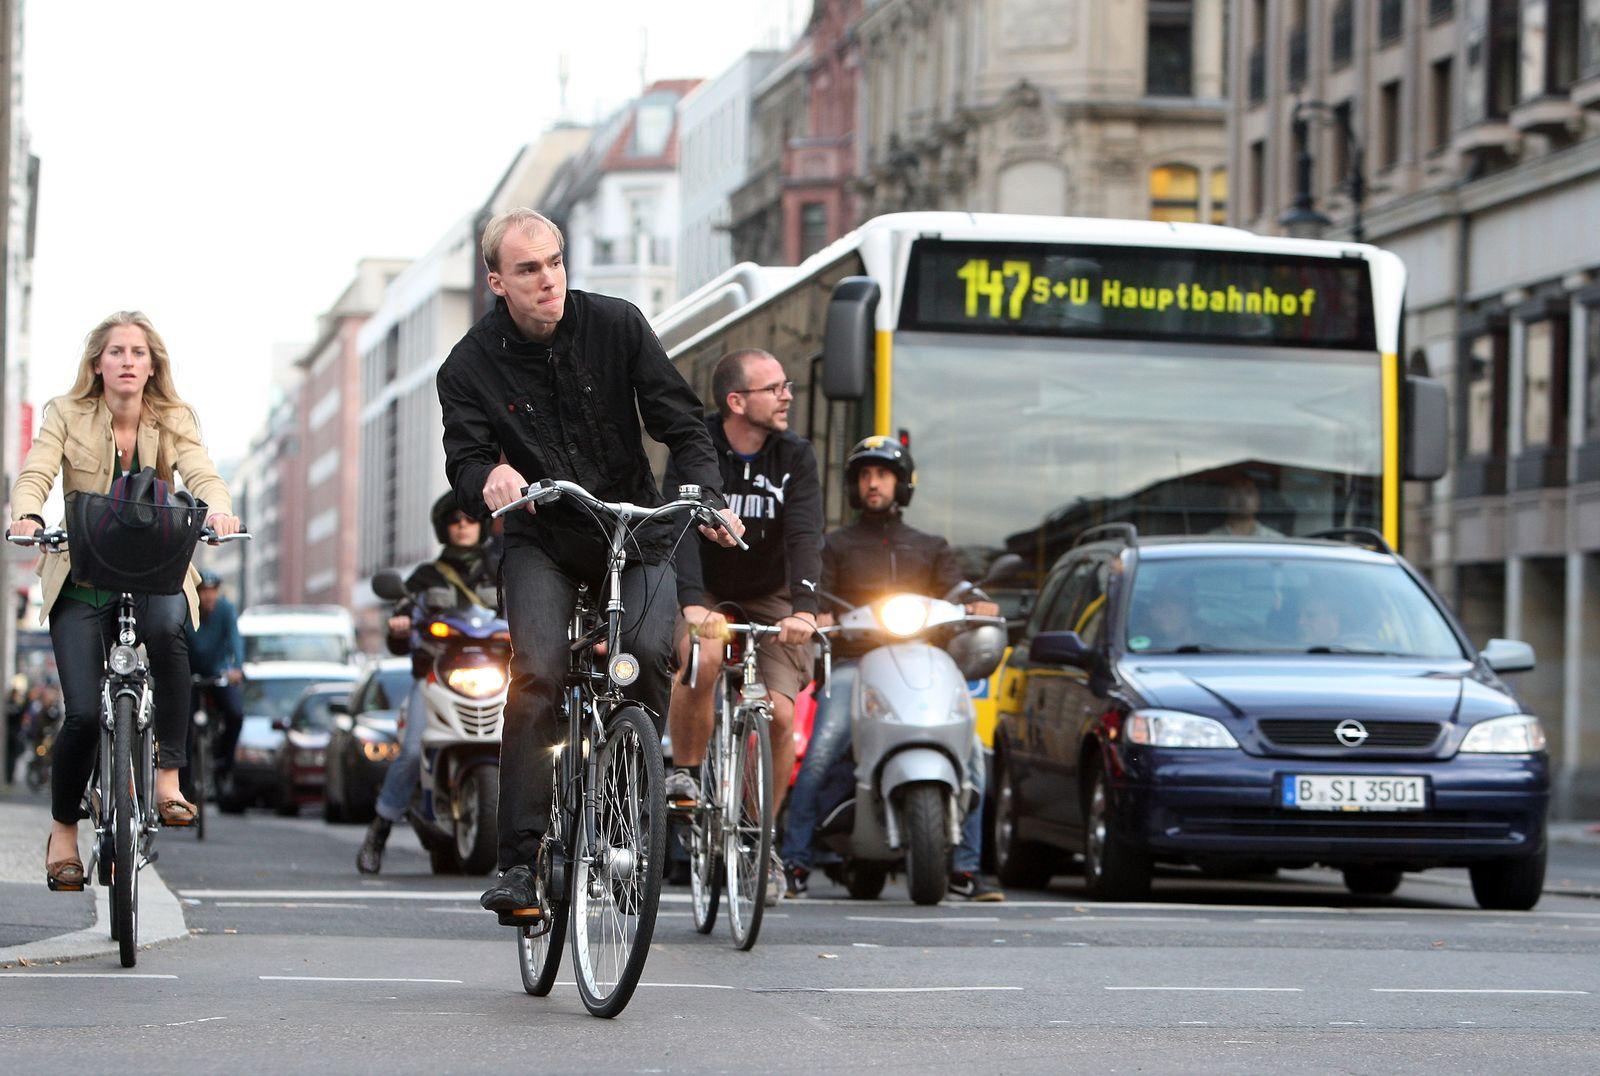 Motorists And Cyclists Co-Exist In Urban Traffic